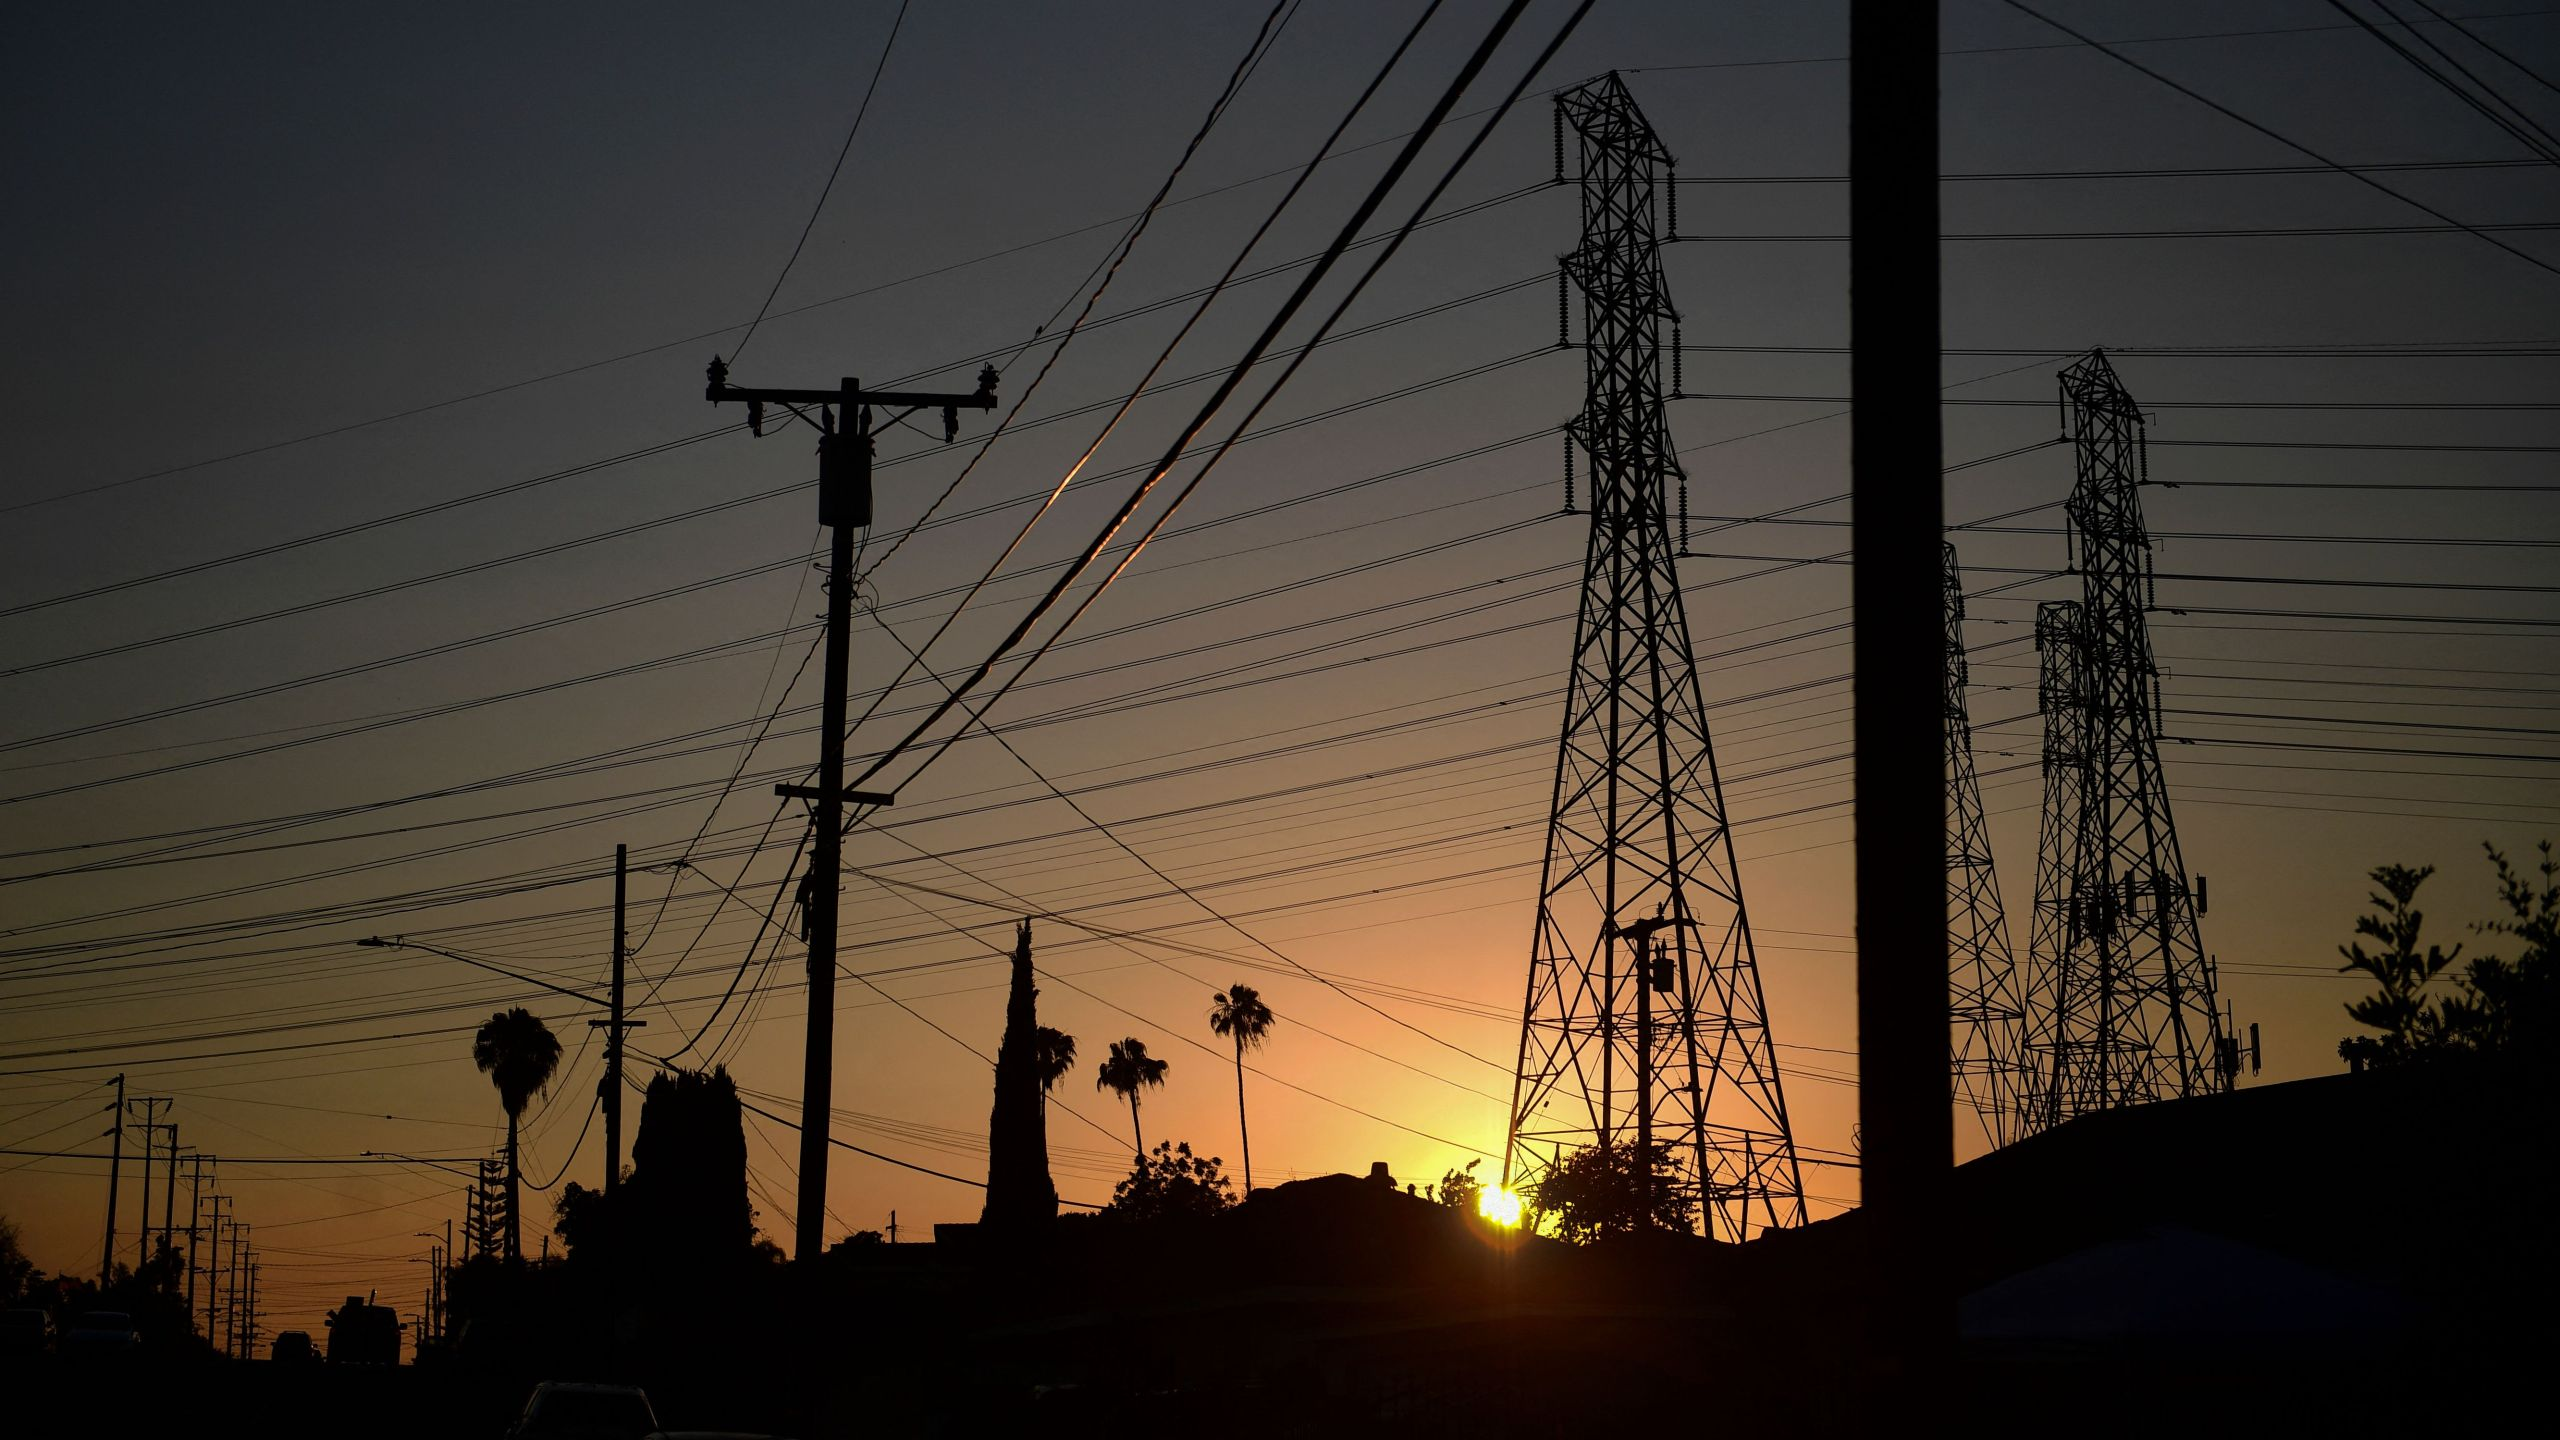 The sun sets behind power lines in Rosemead, on June 14, 2021. (FREDERIC J. BROWN/AFP via Getty Images)